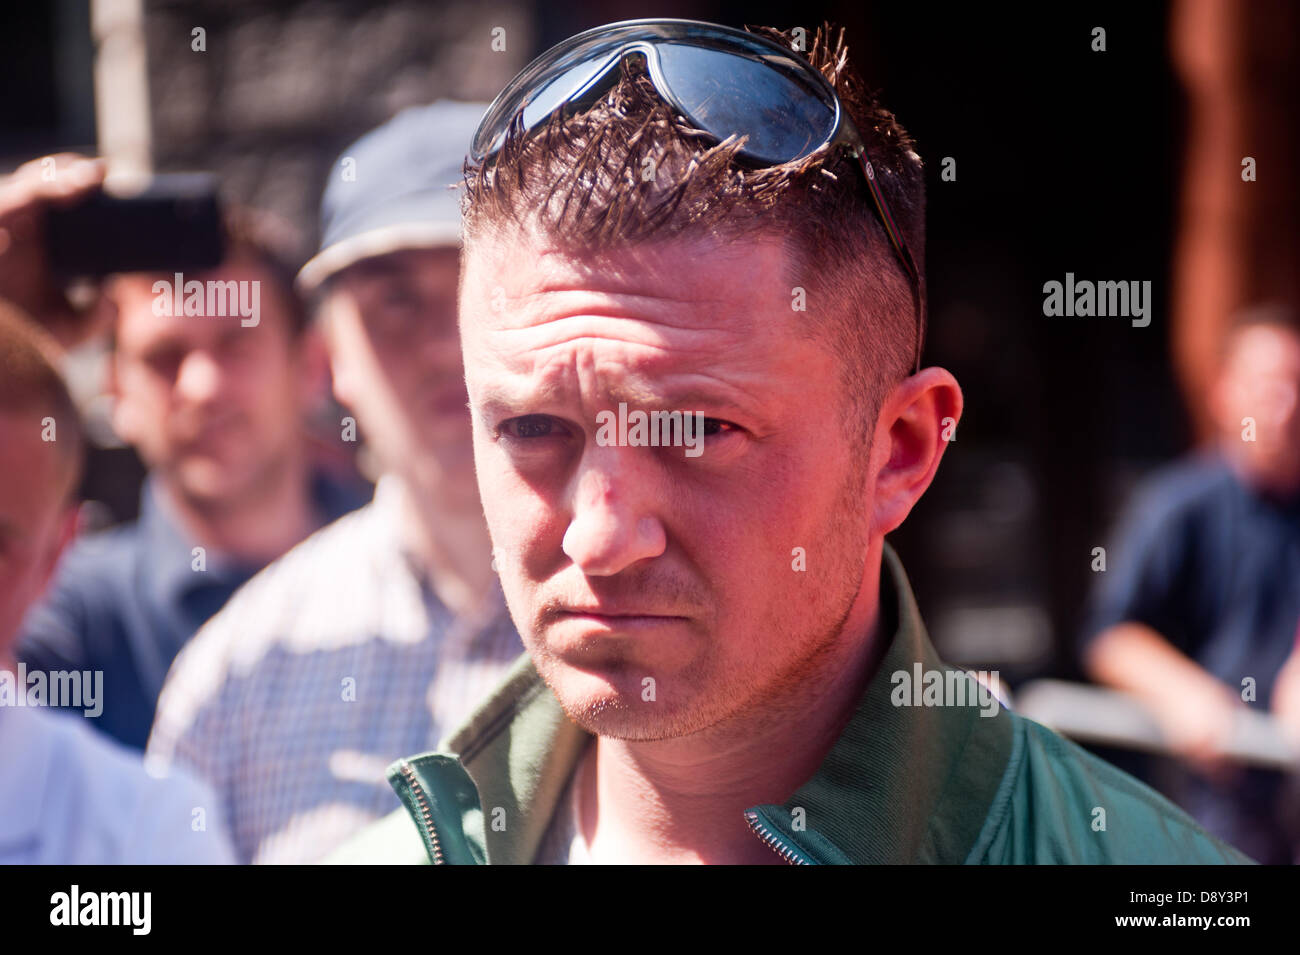 London, UK. 6th June 2013. English Defence League (EDL) leader Tommy Robinson releases interviews to the media during - Stock Image